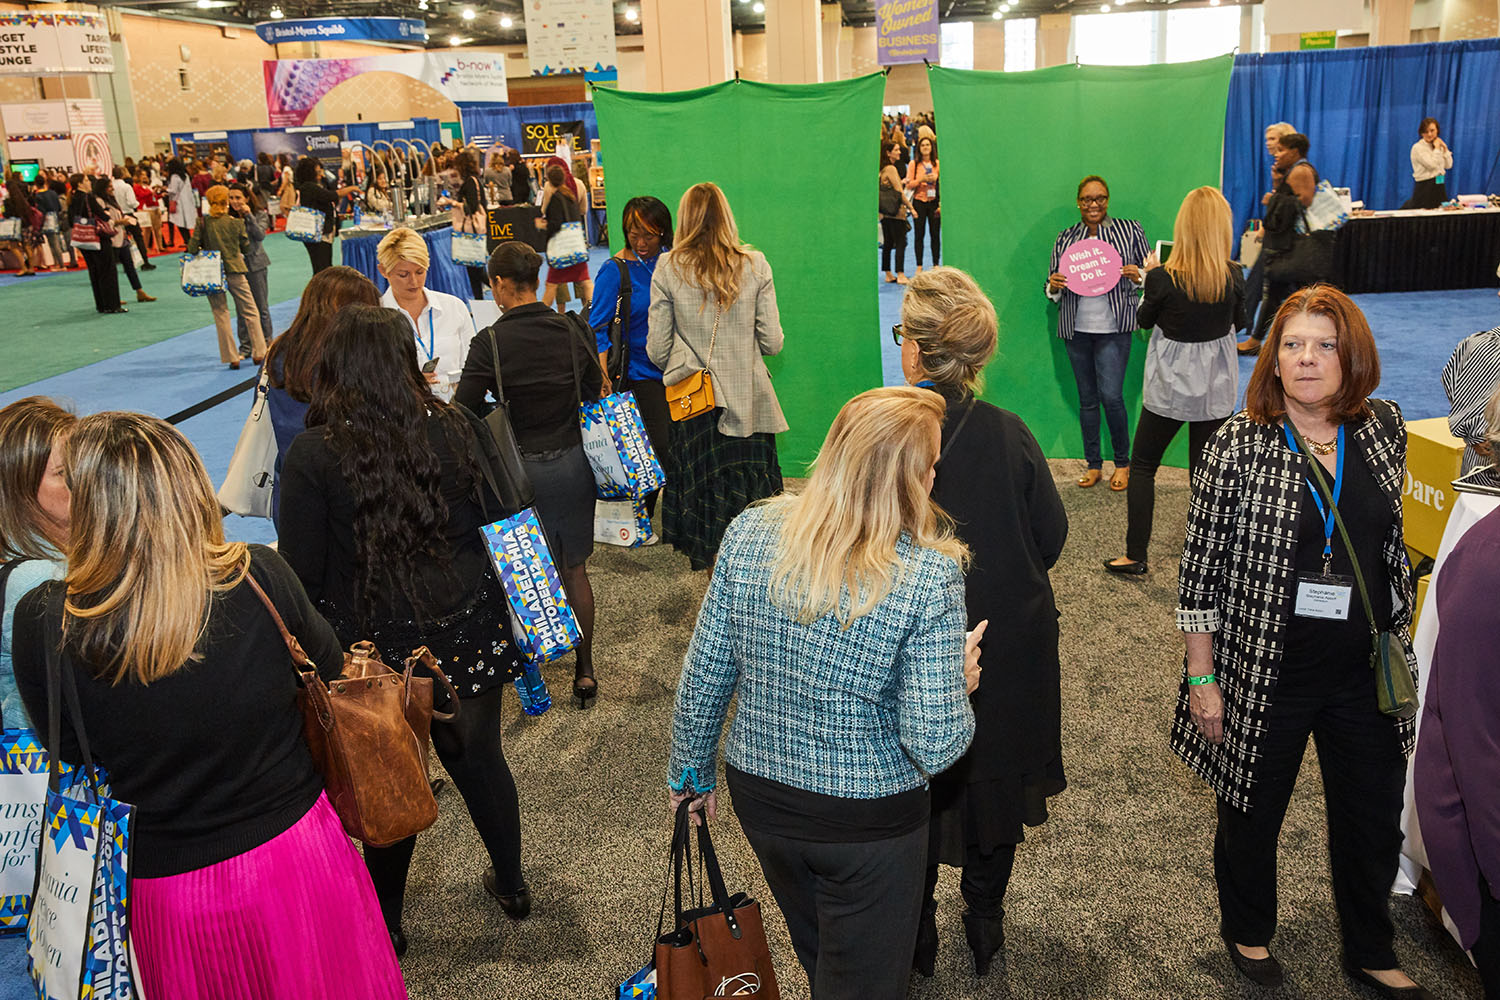 Image 7_PA Conference for Women attendees particpate in Qurate Retail Group's #dreamdaredo social activation.